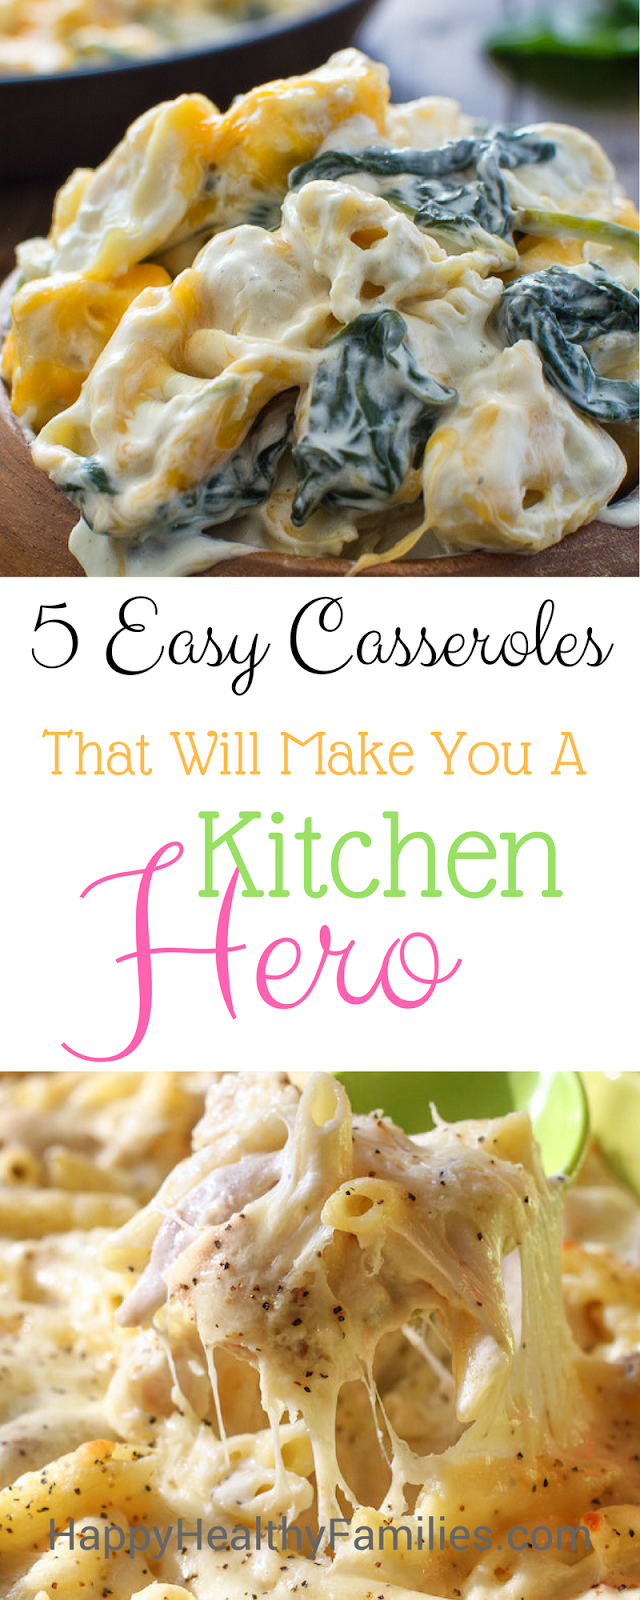 easy casserole recipes to make for dinner tonight